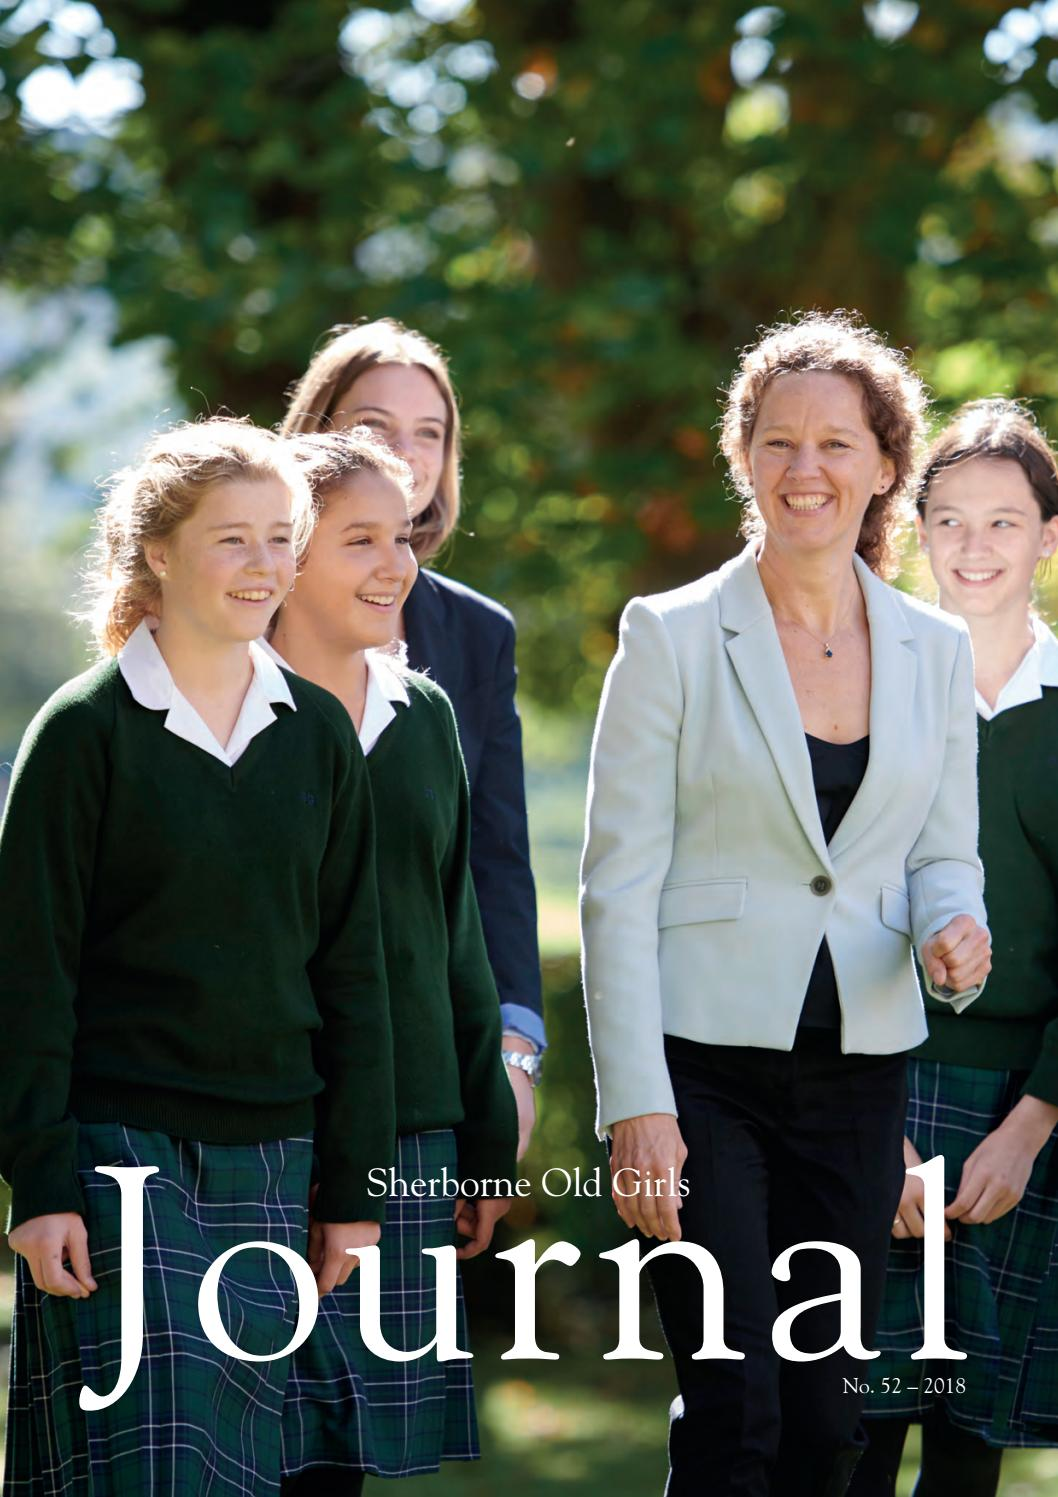 Sherborne Old Girls Journal 2018 by Shelleys the Printers